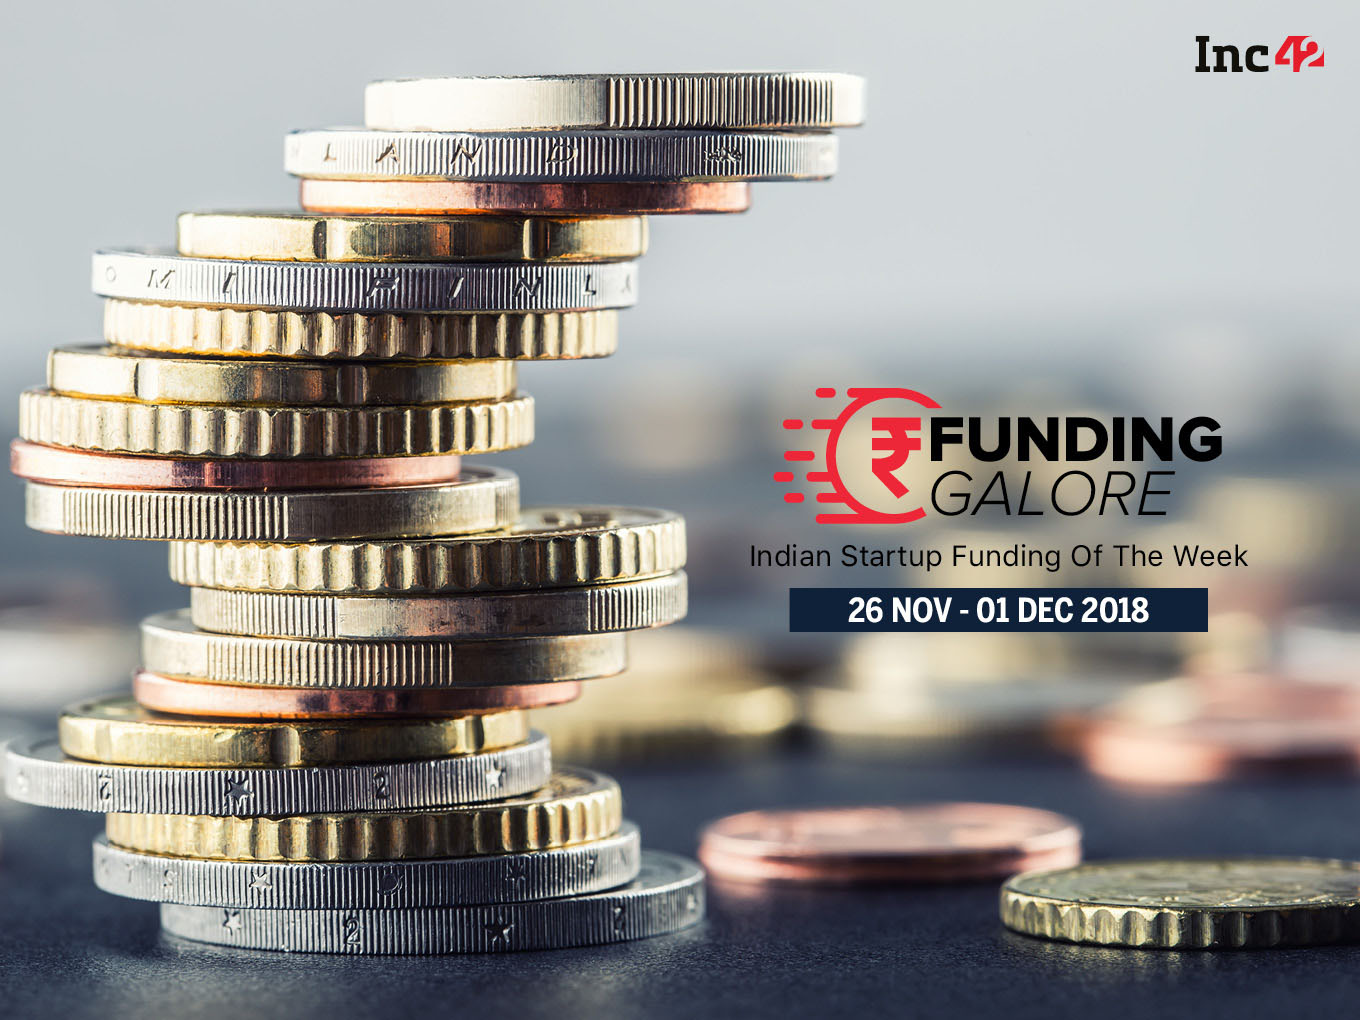 Funding Galore: Indian Startup Funding Of The Week [26 November- 1 December 2018]